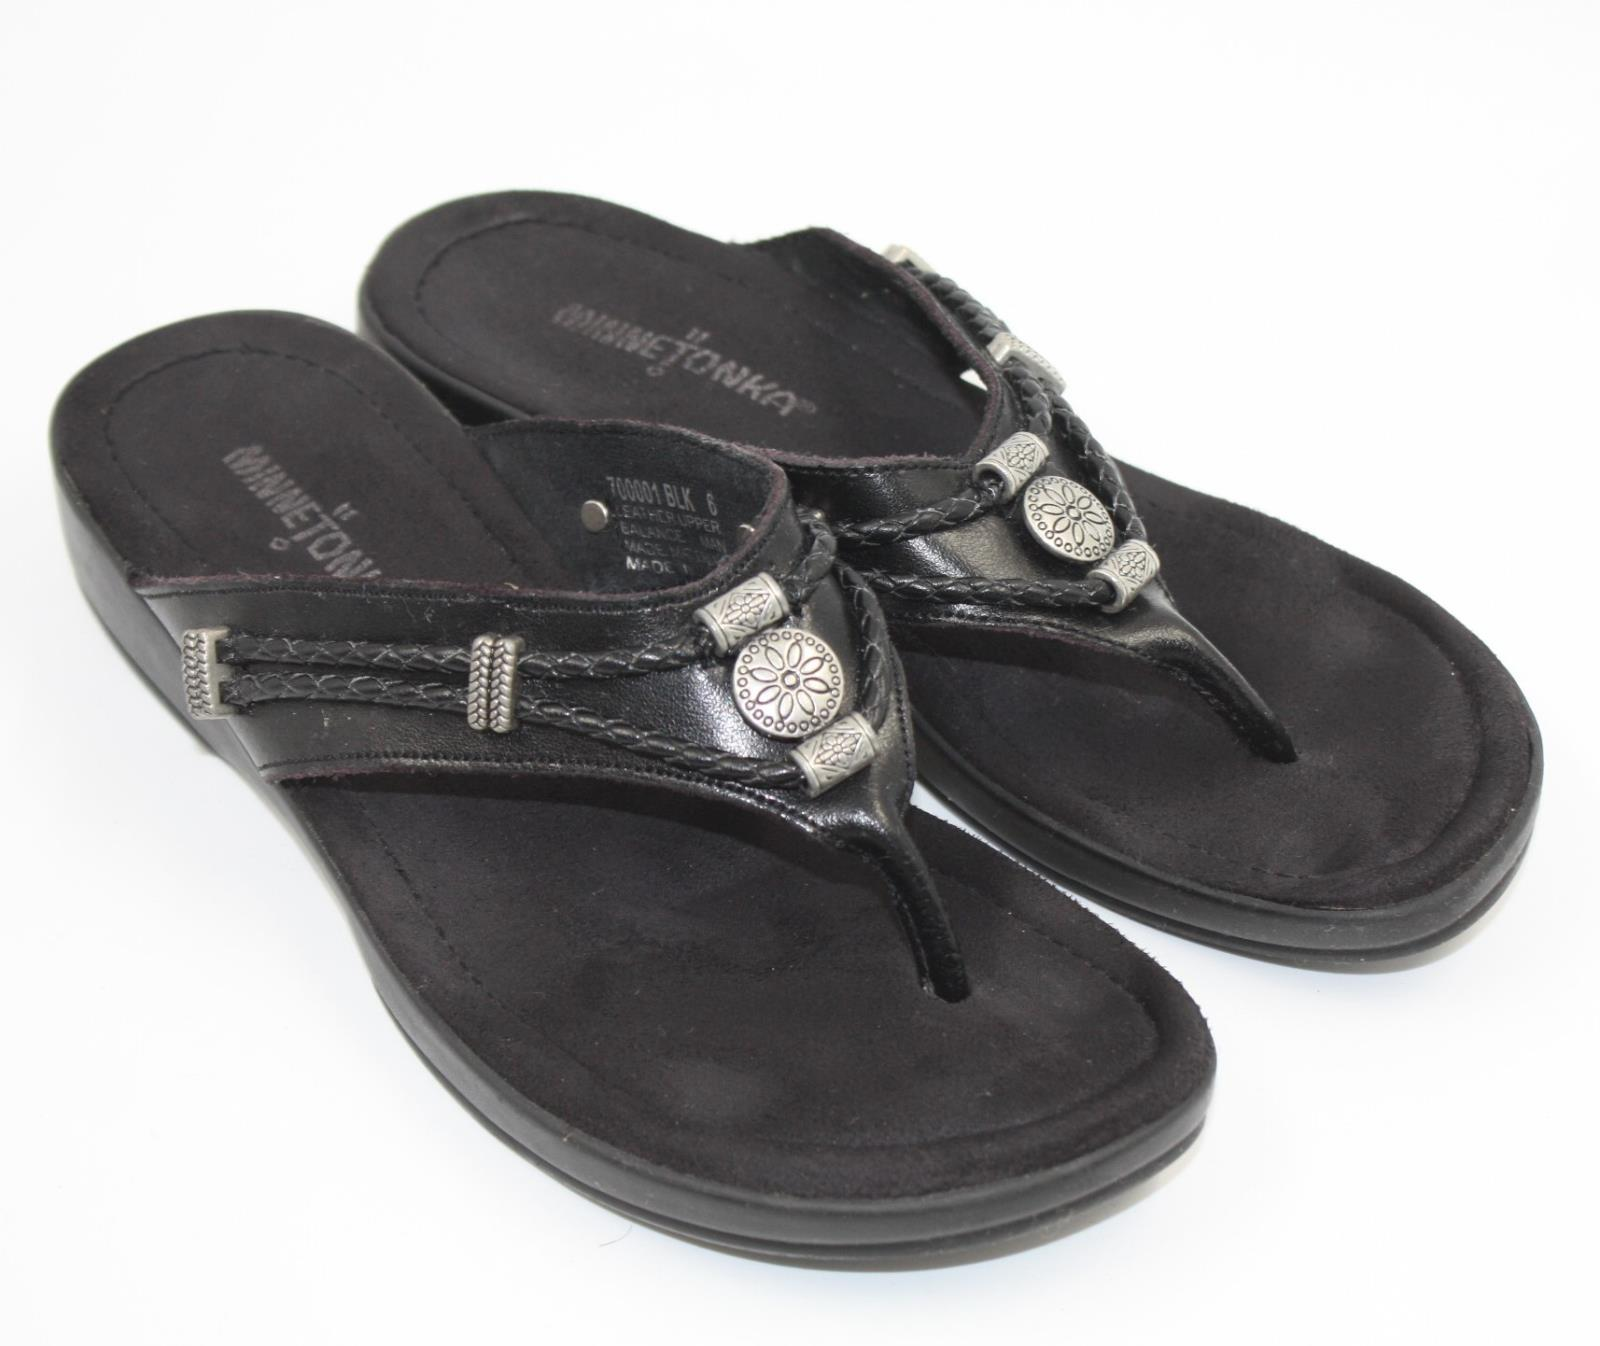 fc163a7d4 Details about Minnetonka Womens Ladies Black Leather Thongs Flip Flops  Sandals Shoes Size 6M